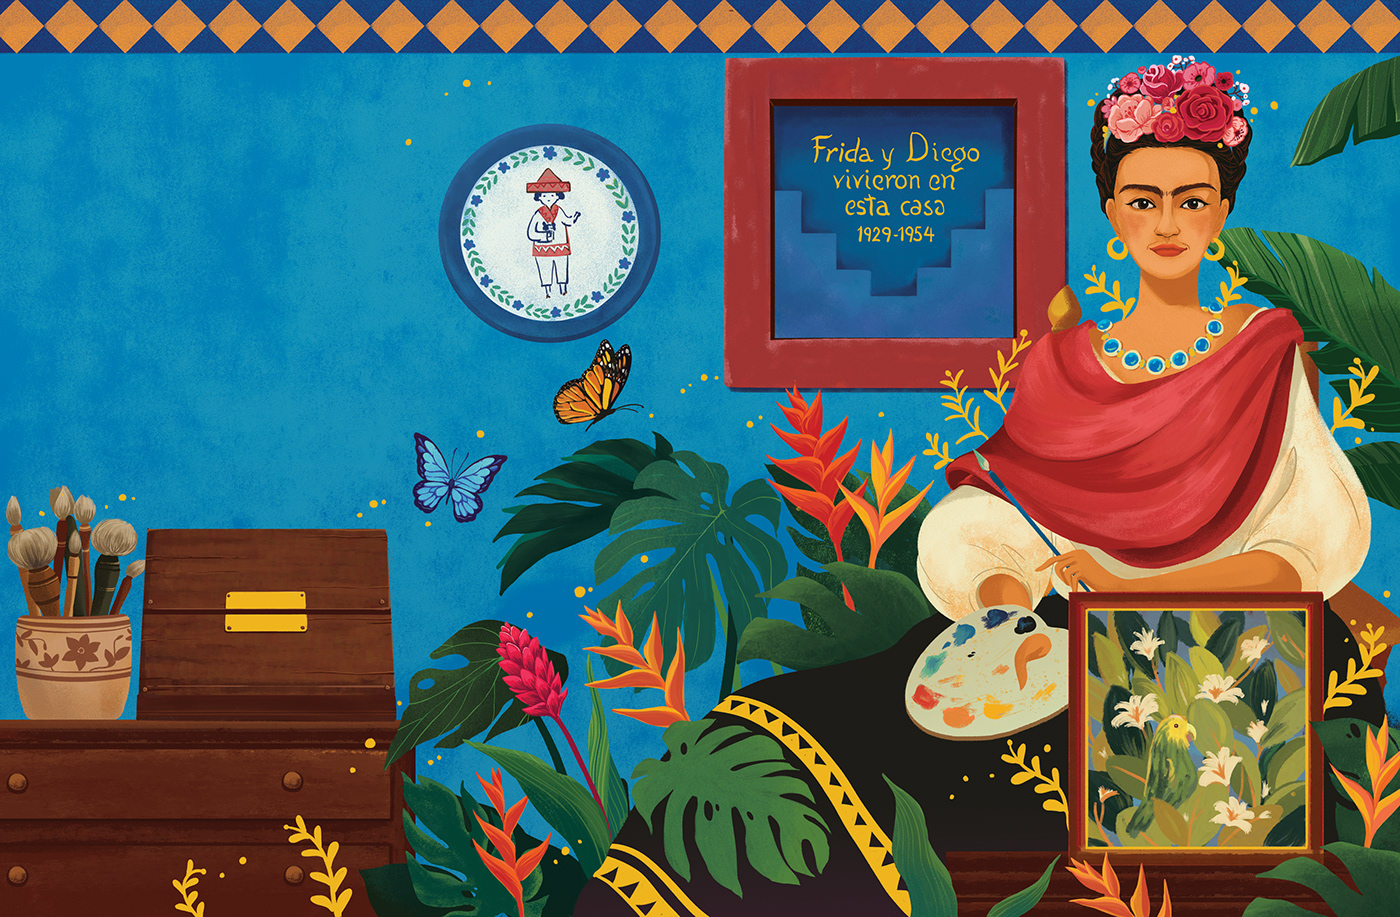 digital illustration art frida kahlo